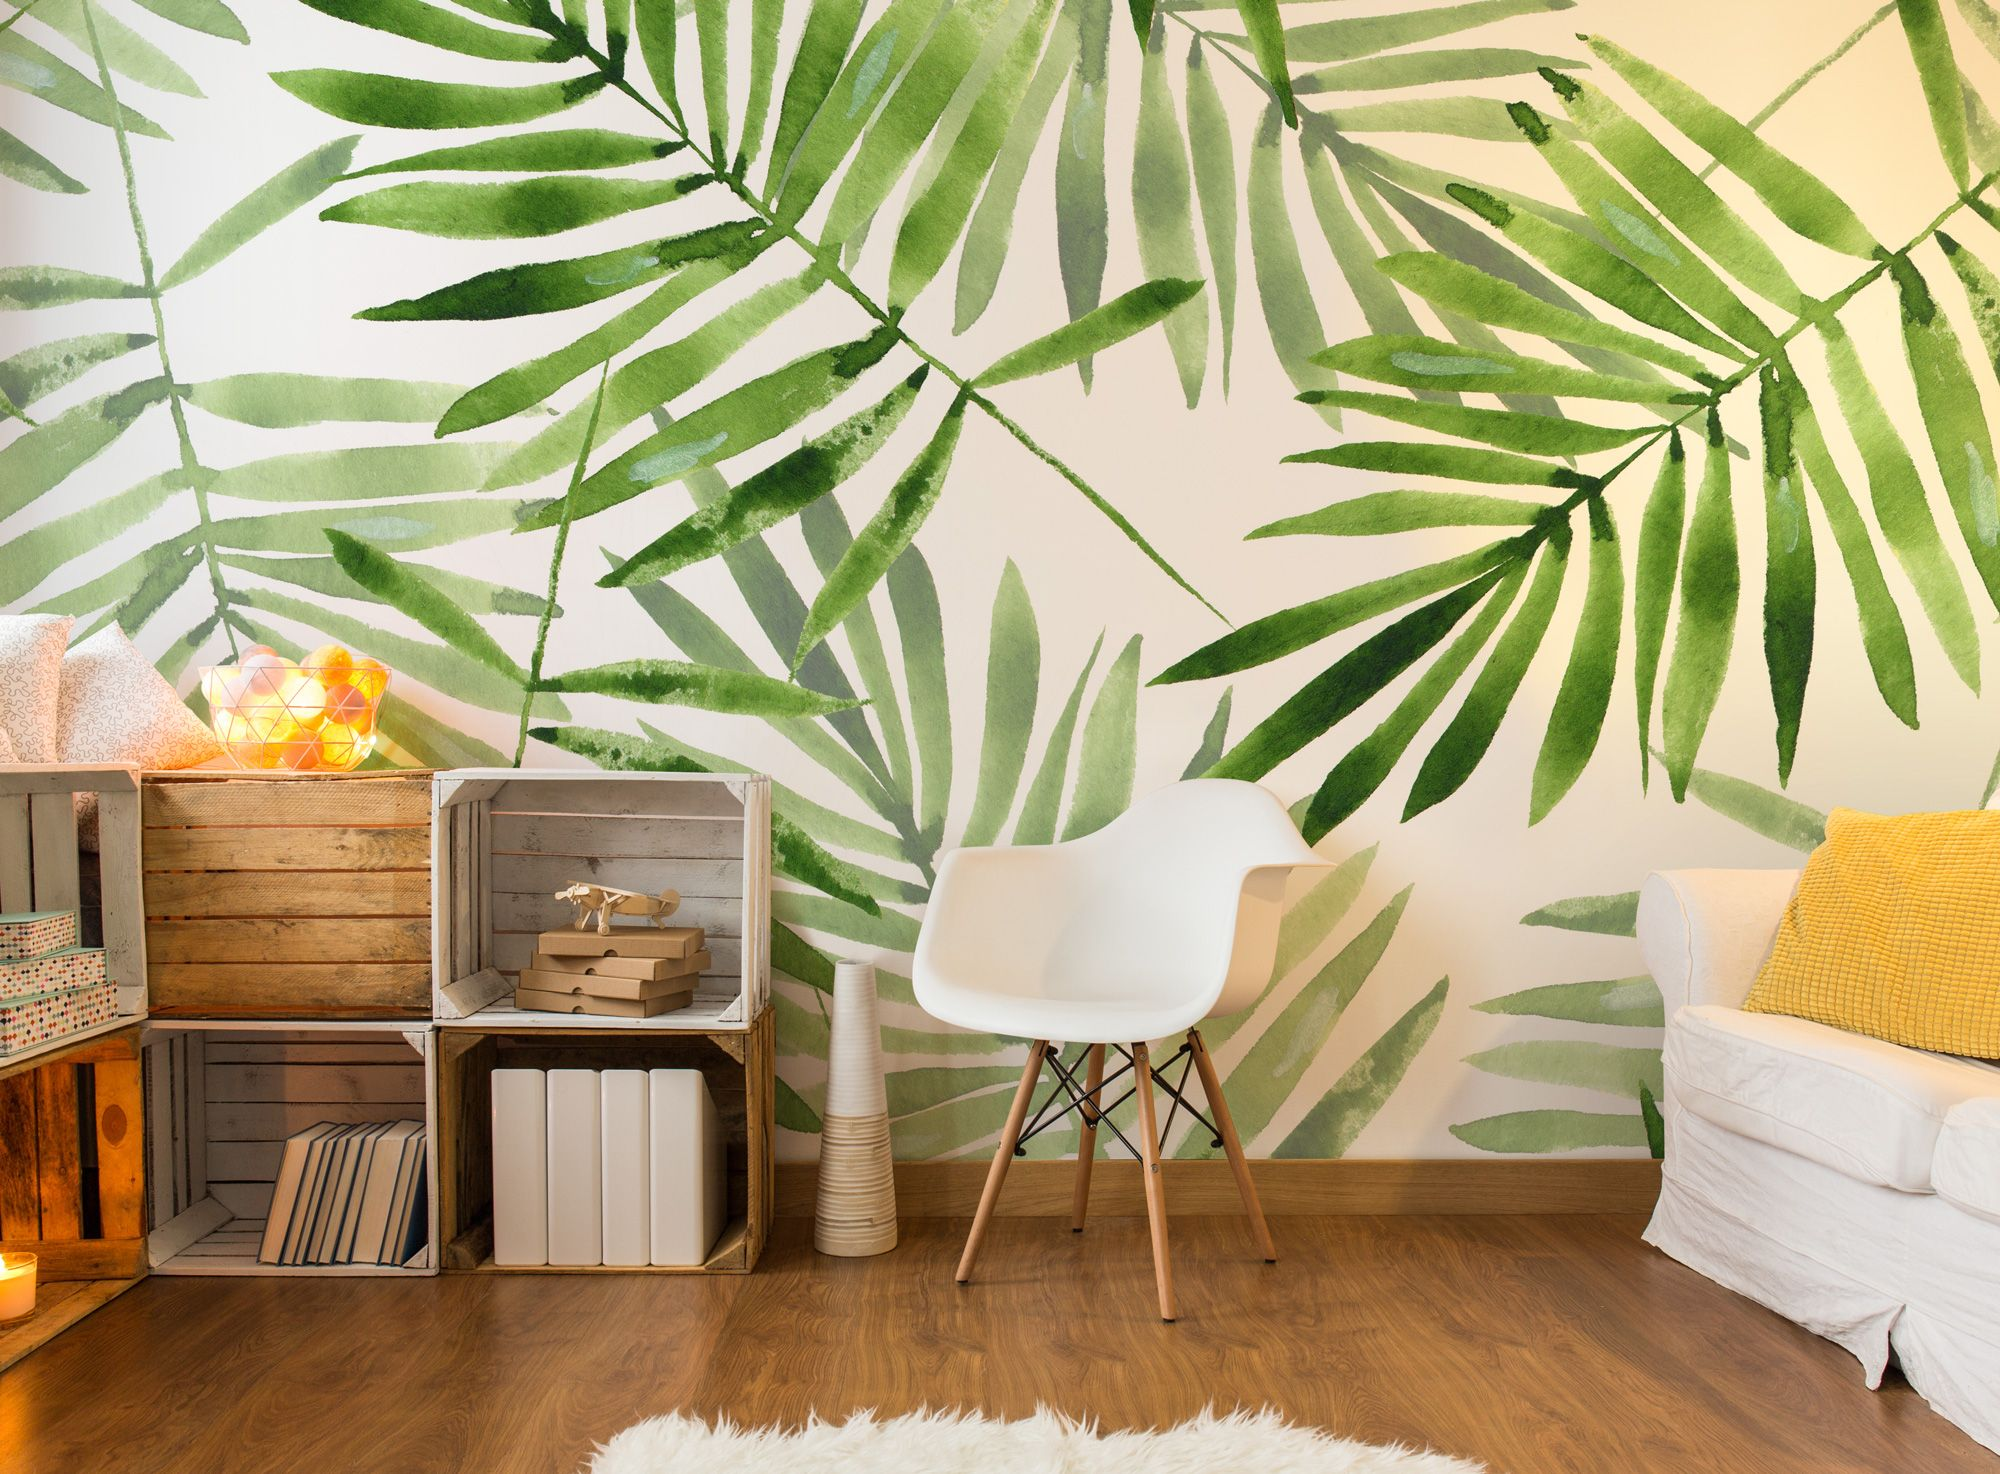 Green Palms Wallpaper Wallsauce Uk Wall Design Home Wallpaper Diy Mural